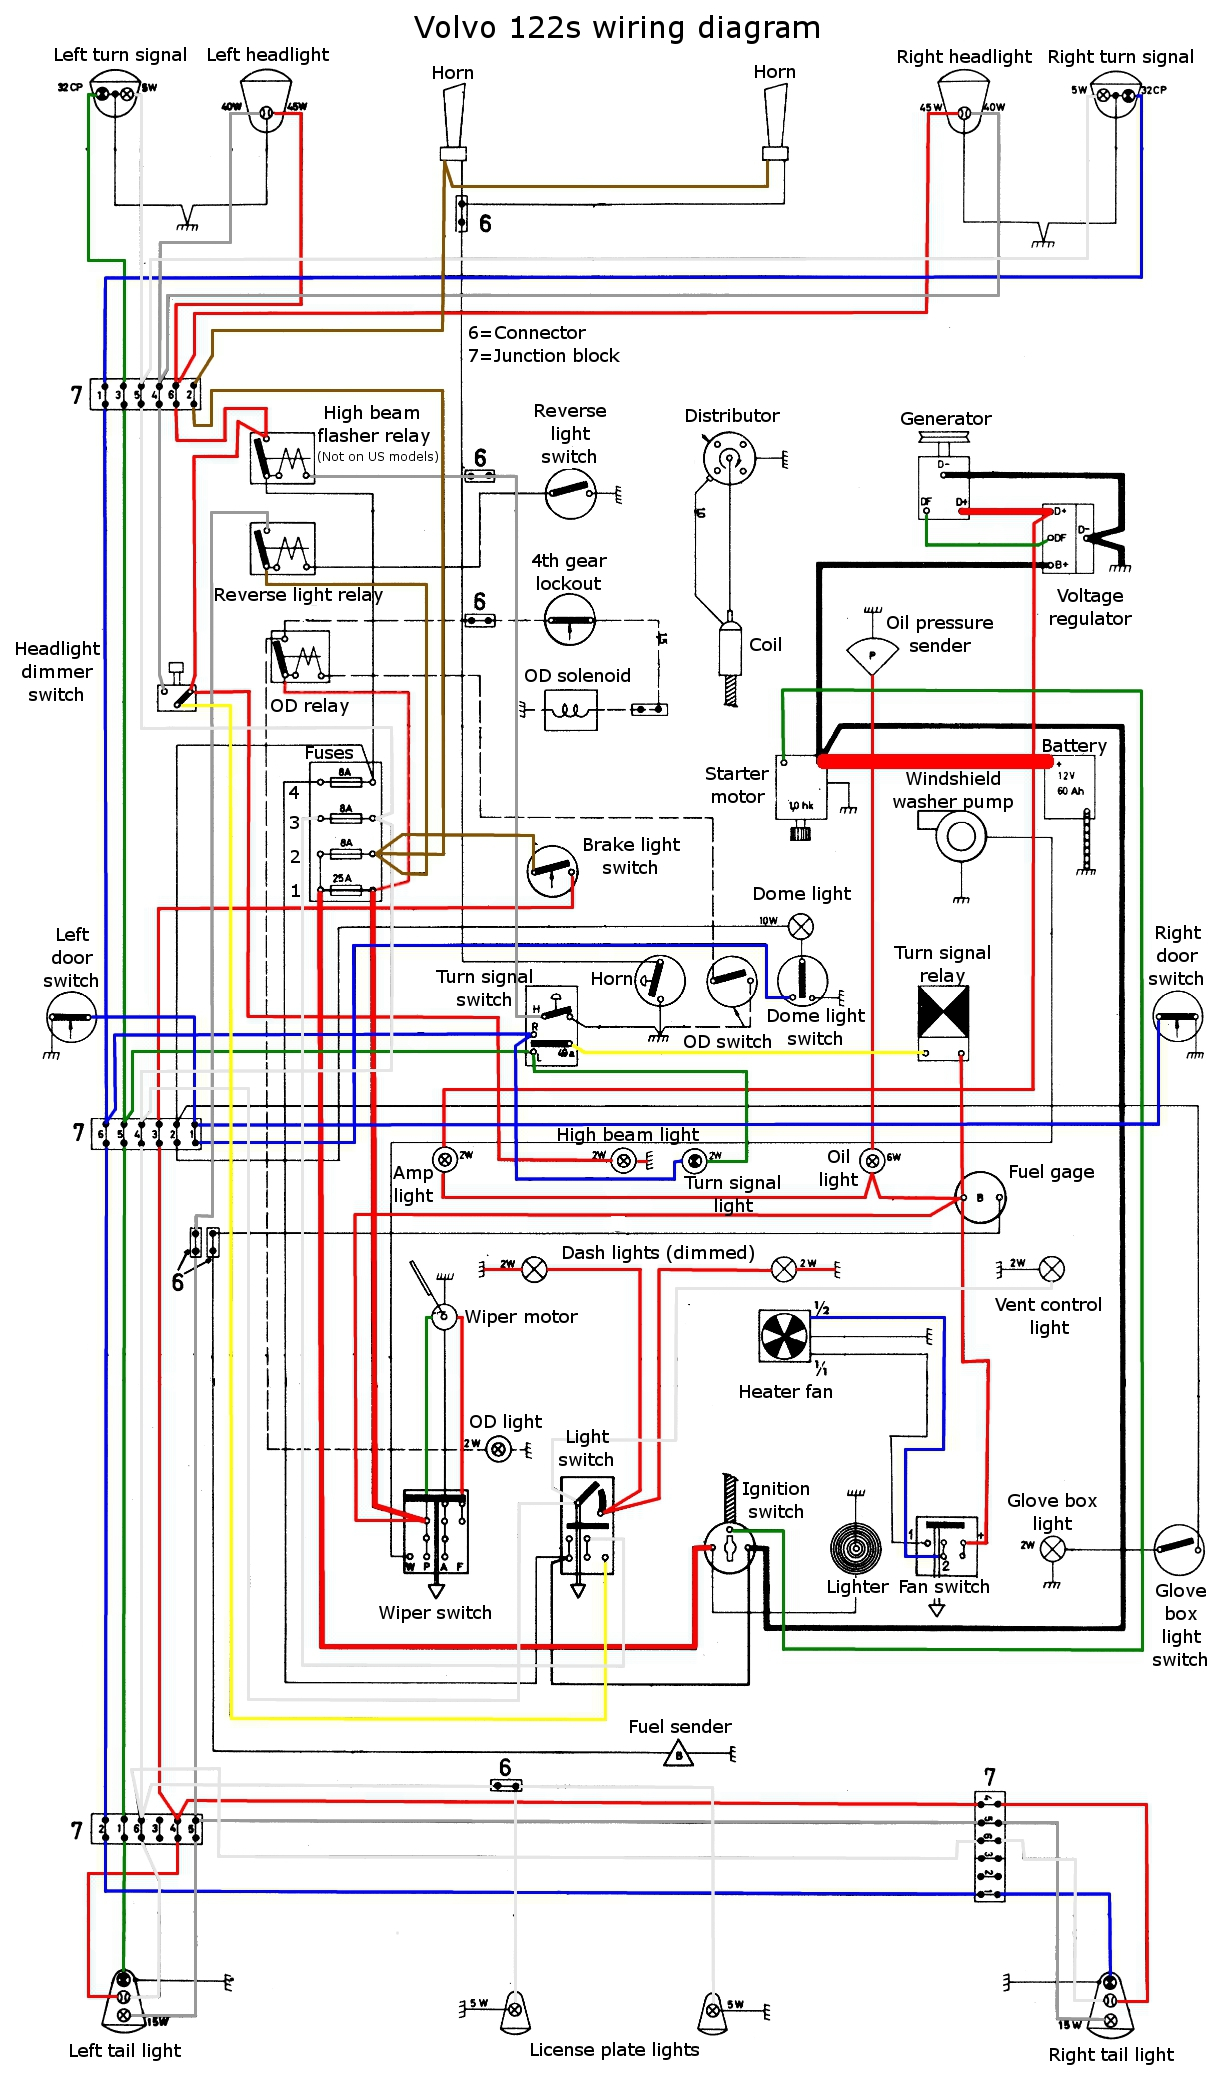 122 wiring diagram color wiring gremlins Vw R32 Wiring Diagram at creativeand.co